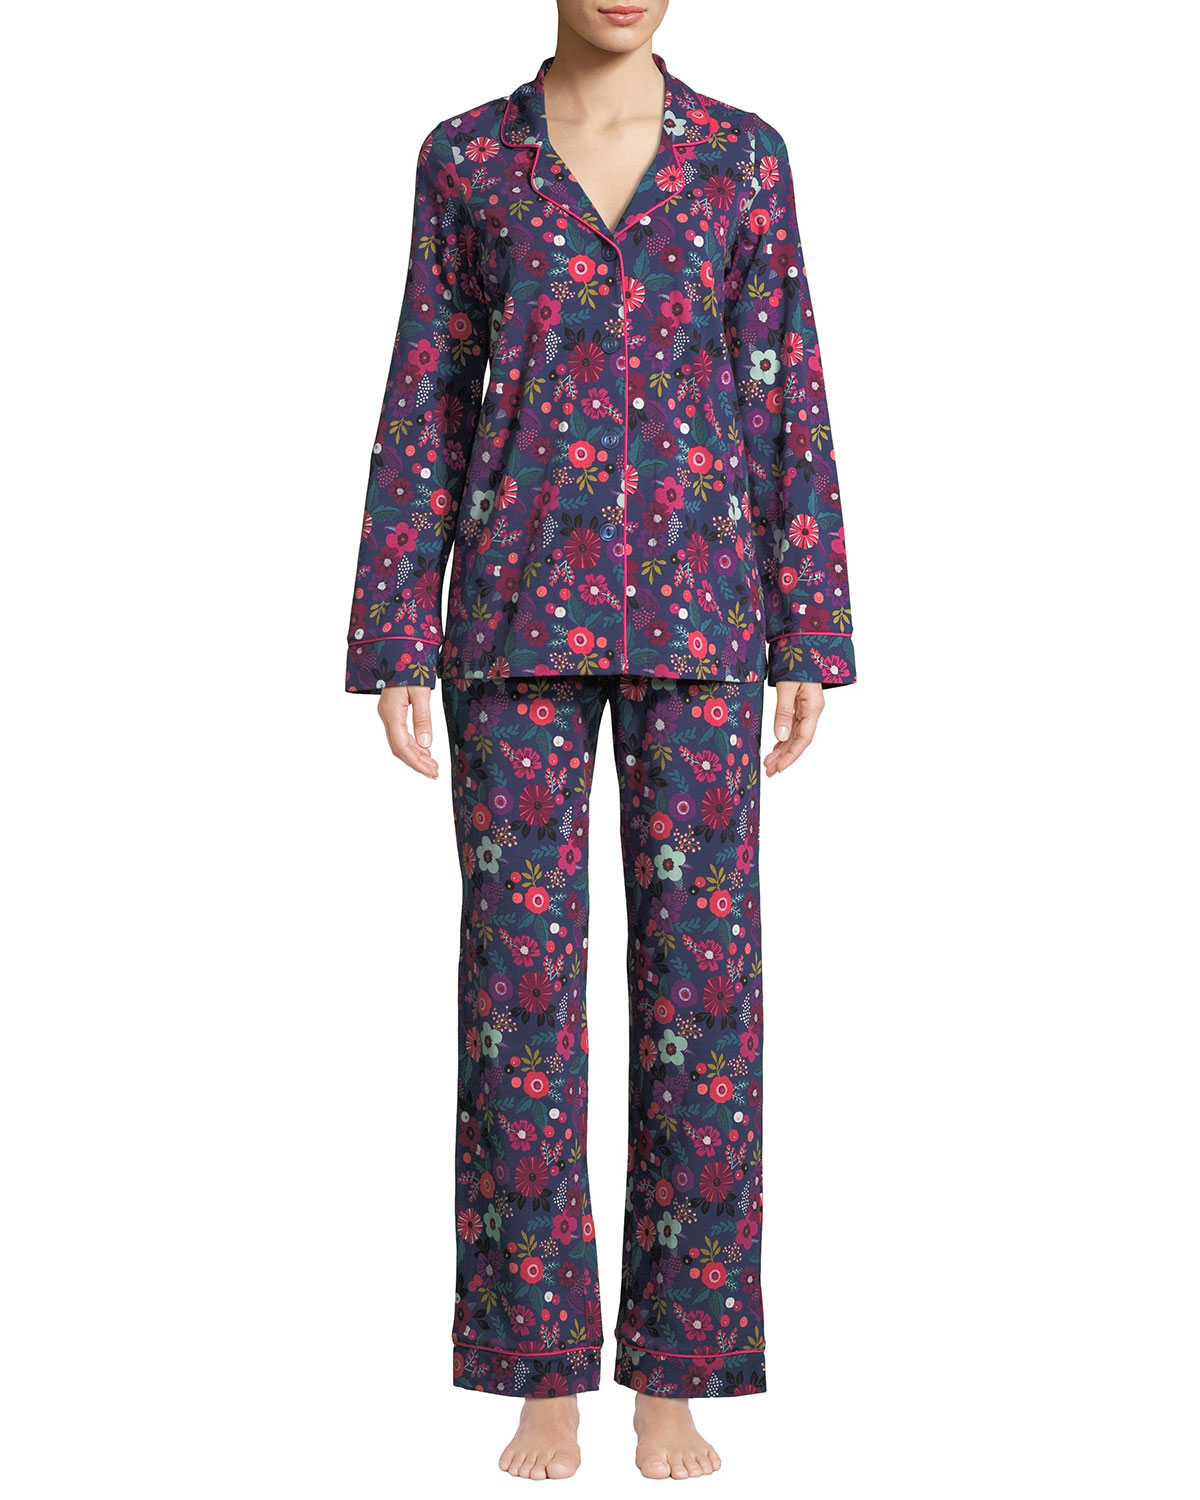 Berries and Blooms Classic Pajama Set